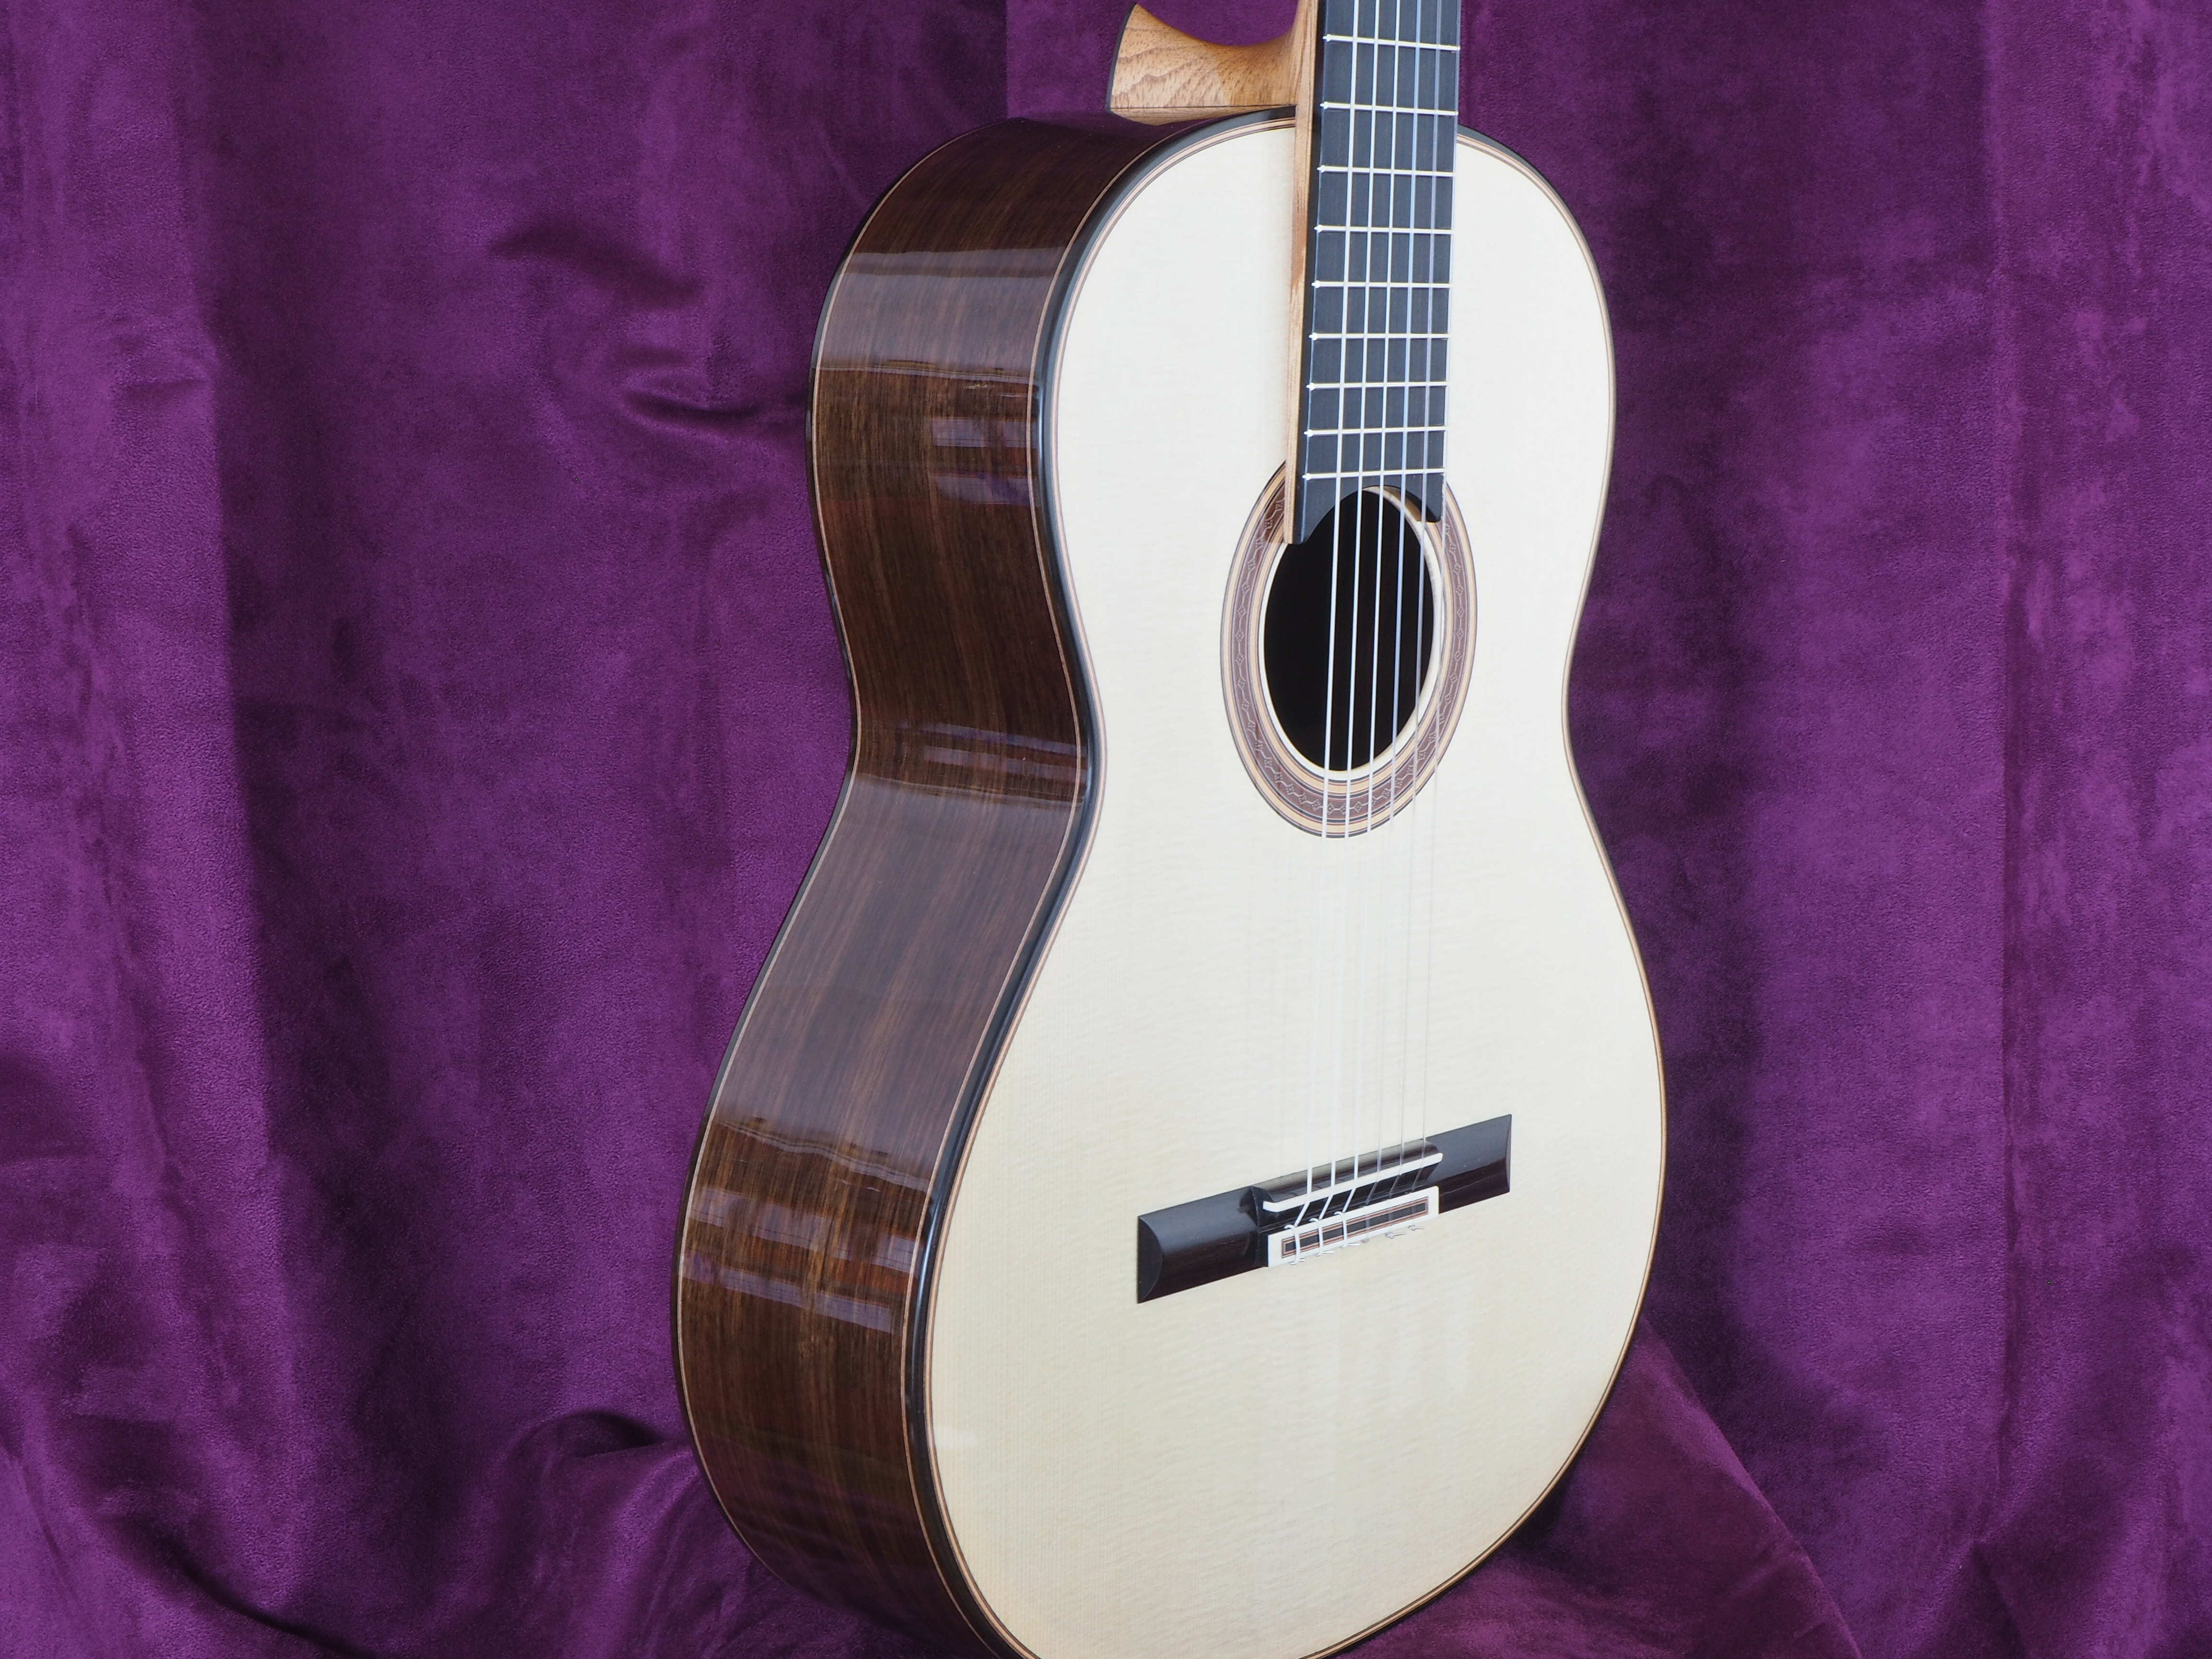 Andreas Krischner guitare classique double-table luthier